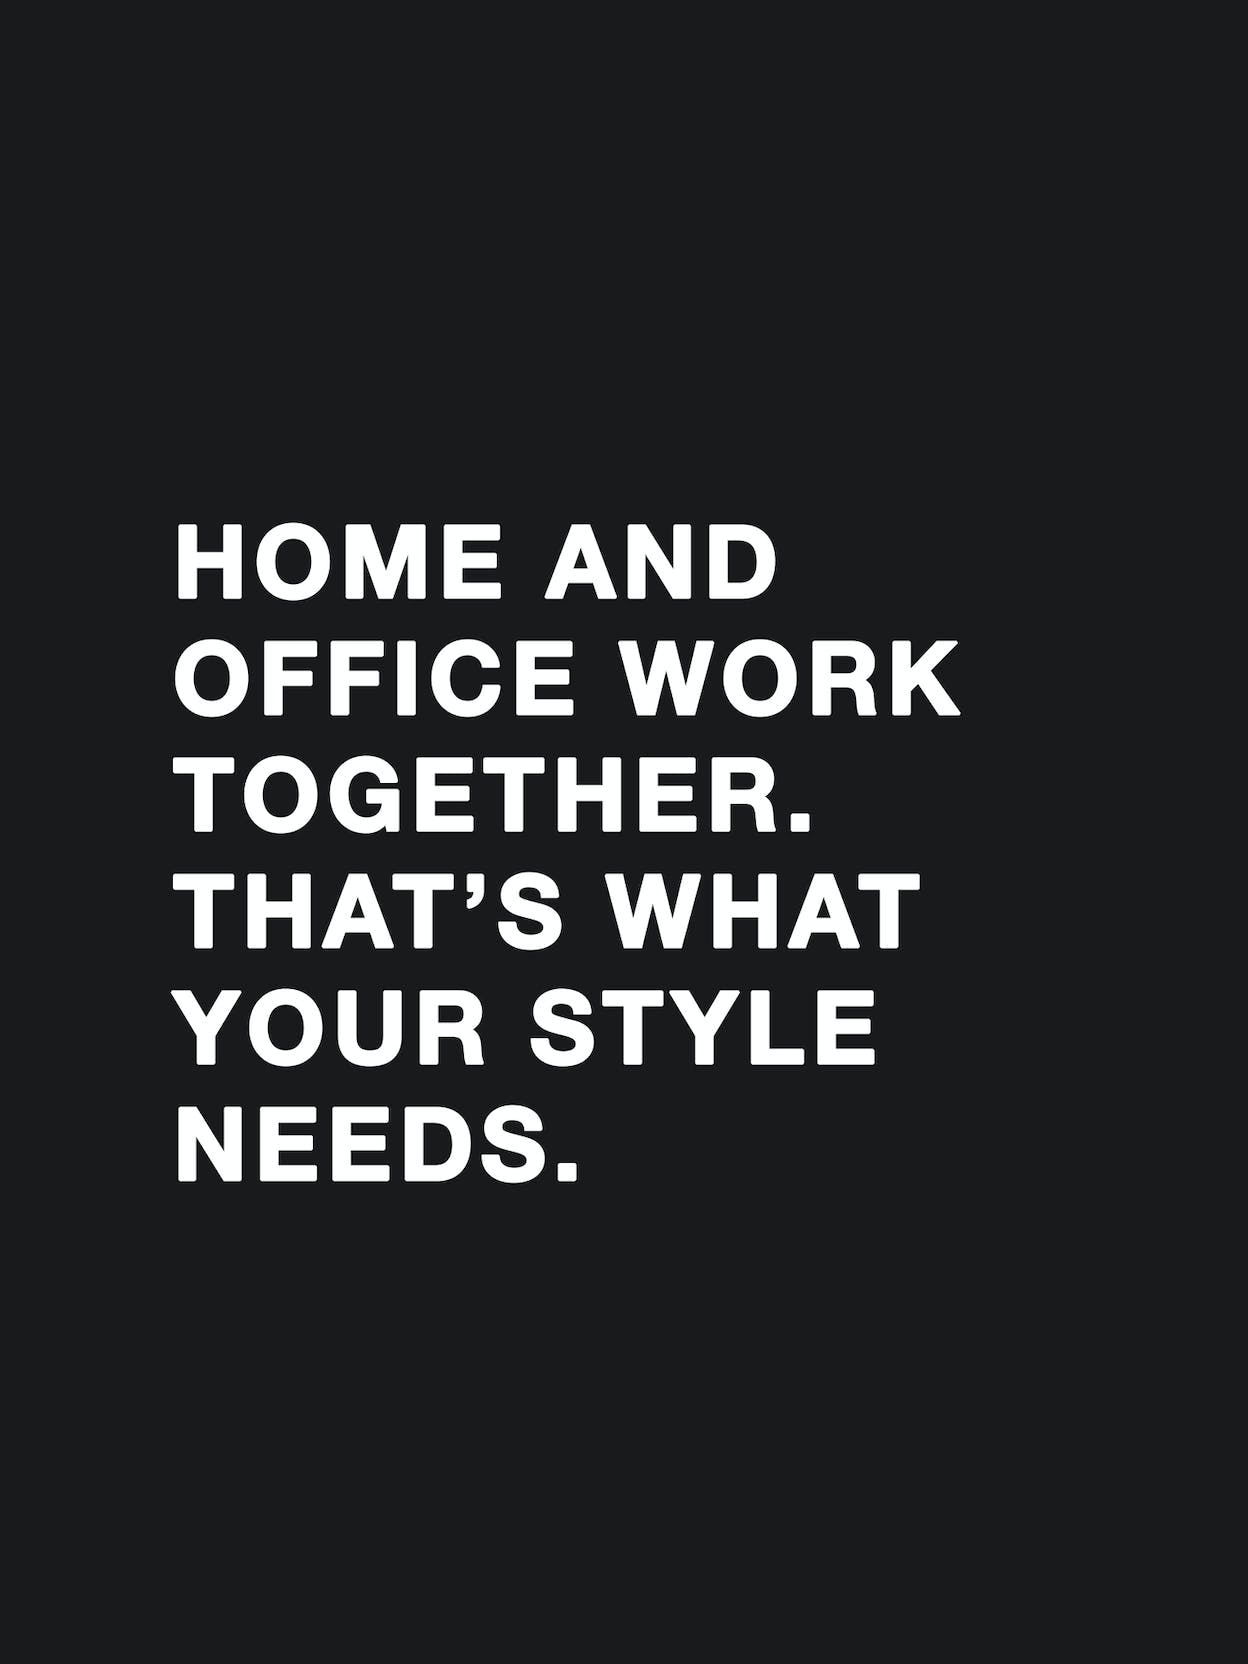 text-home-and-office-work